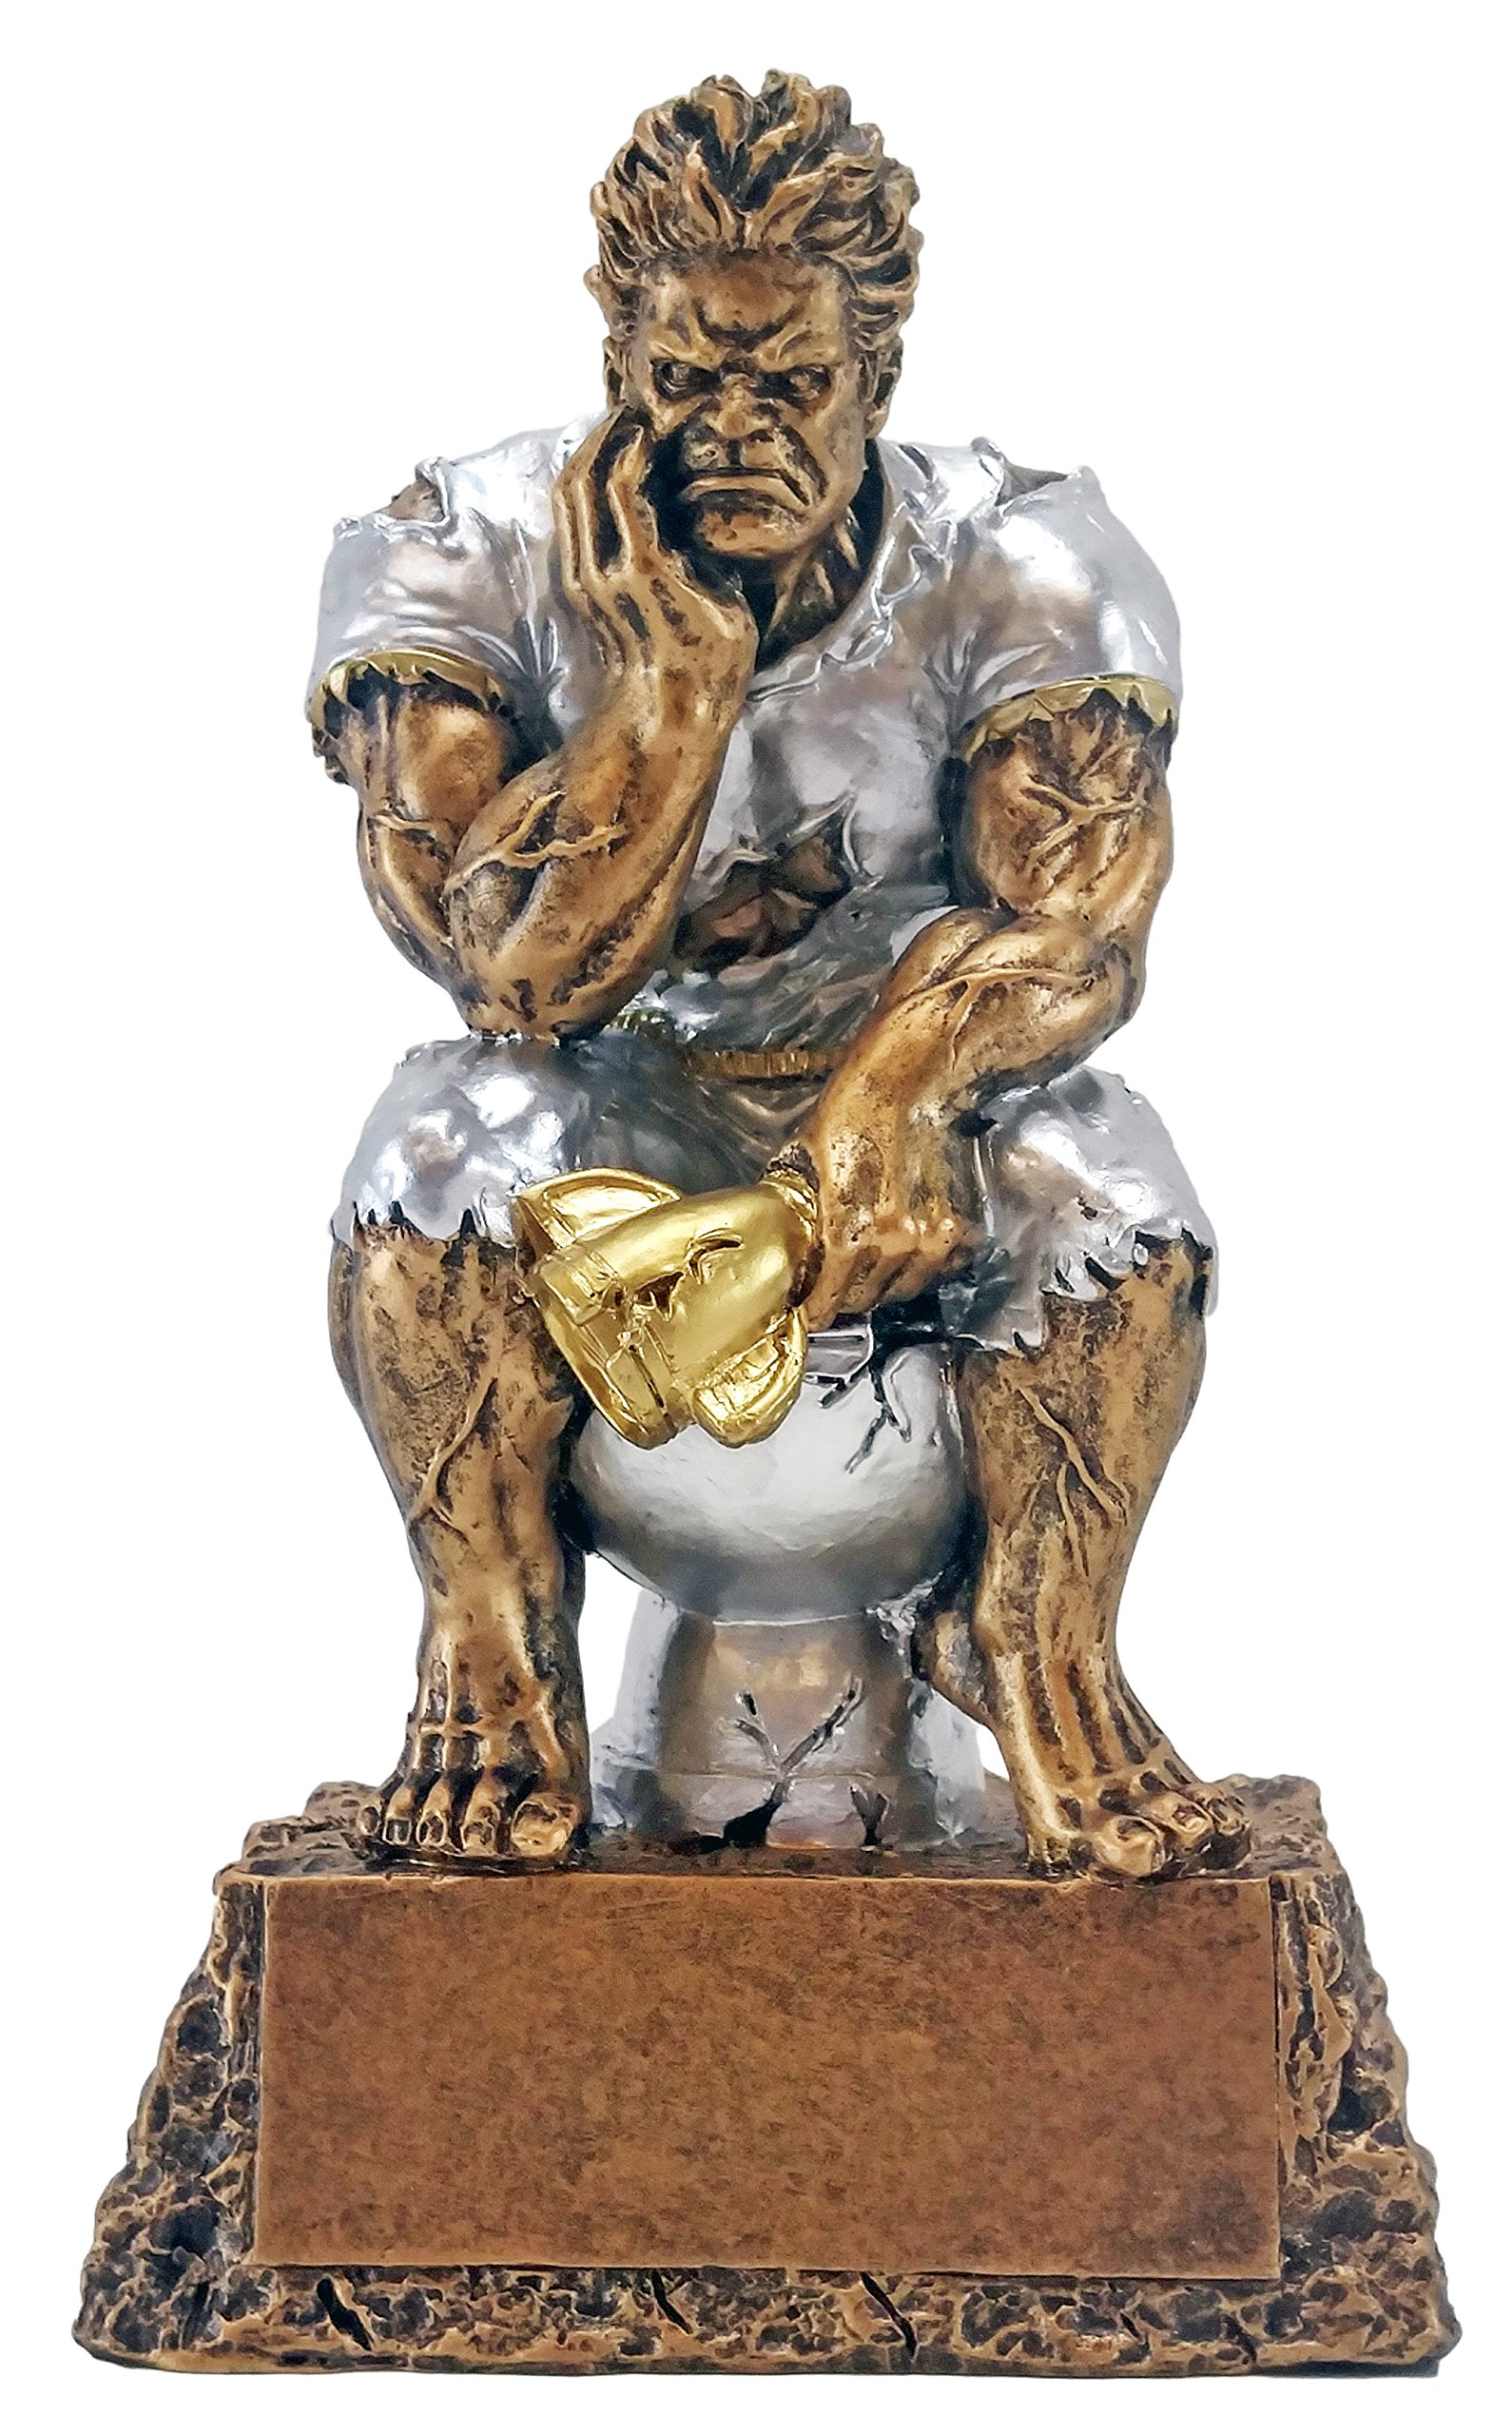 Decade Awards Monster Toilet Bowl Trophy | Loser/Last Place Beast Award | 6.5 Inch - Free Engraved Plate on Request Exclusive